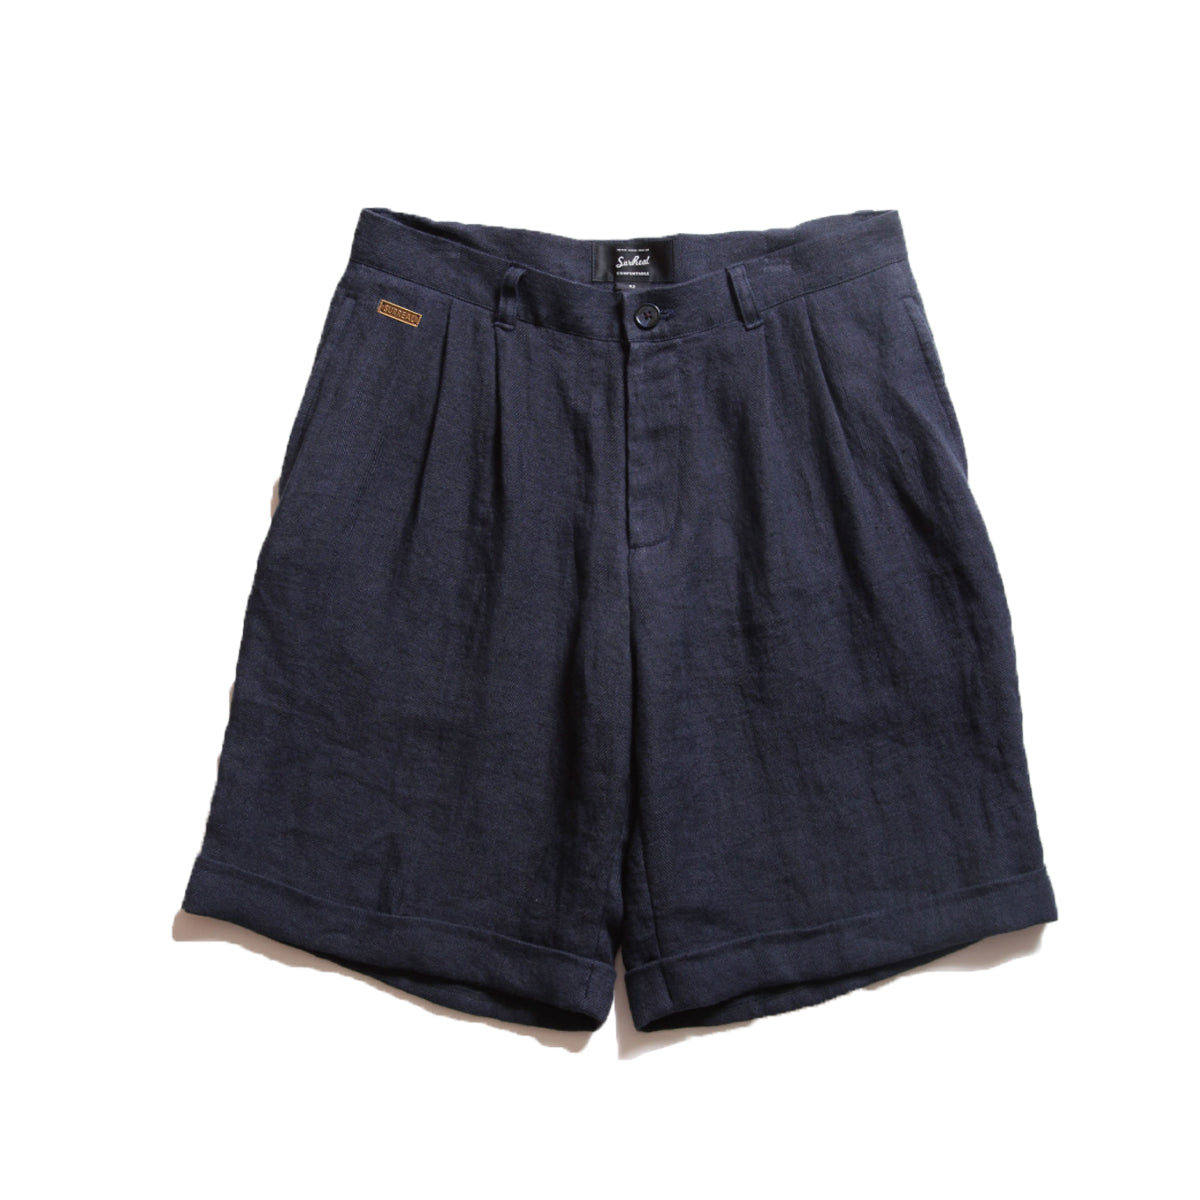 Jose_Linen 2-Tuck Shorts